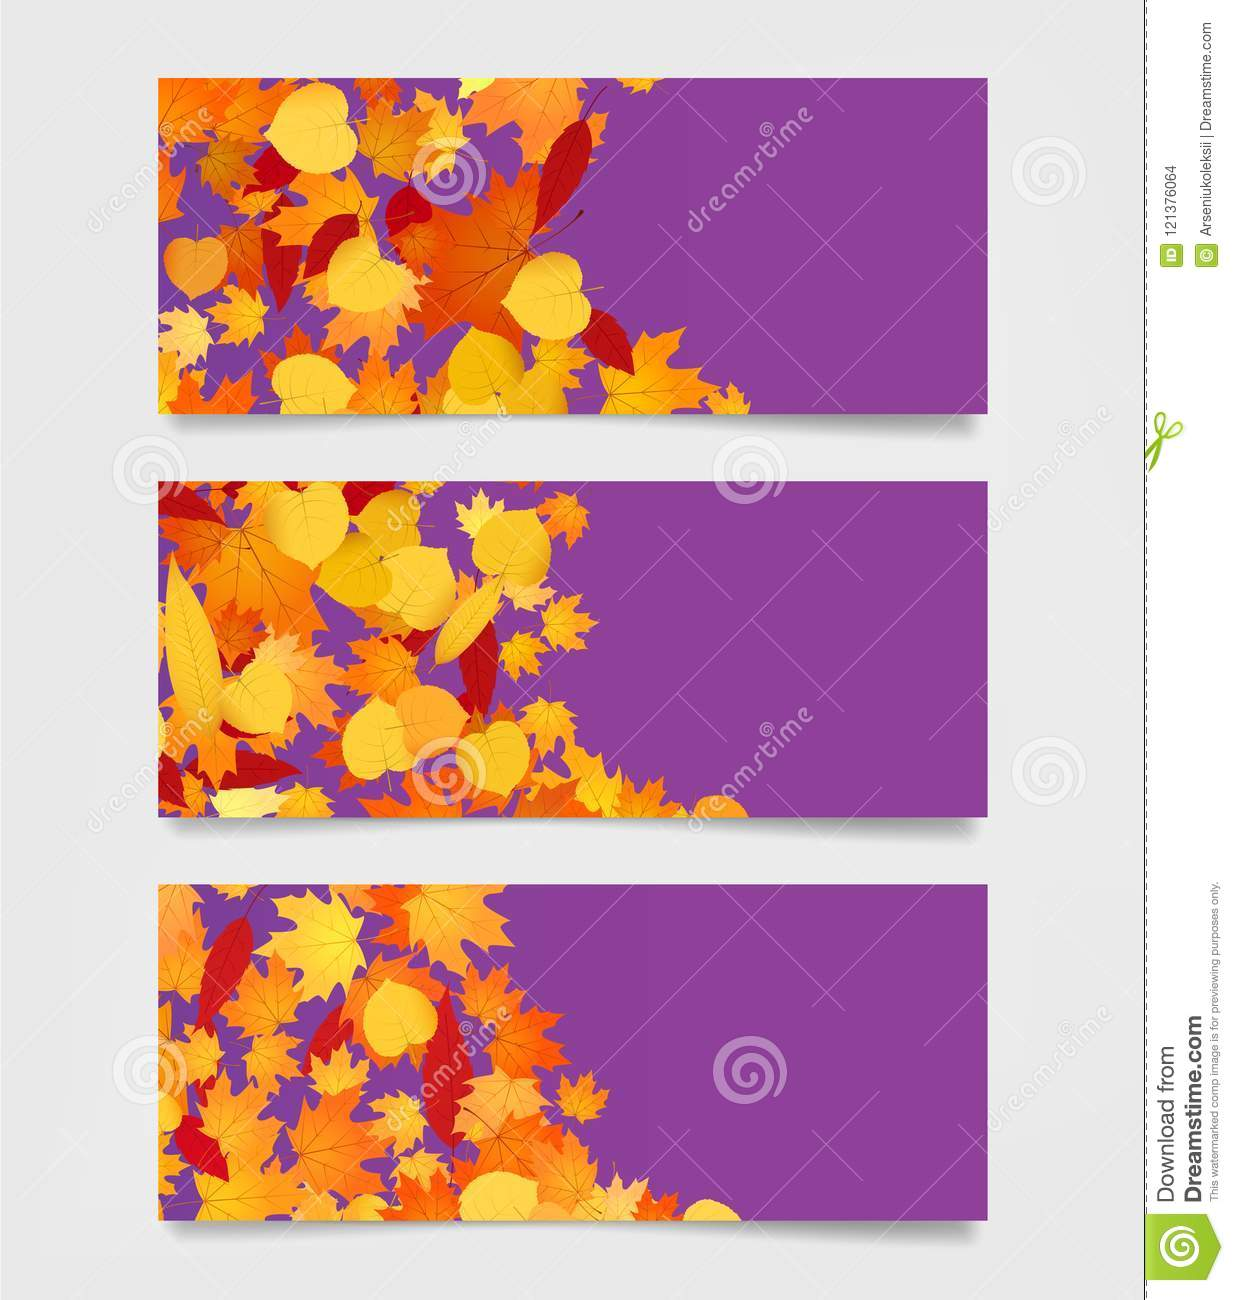 Autumn Web Banners For Sites. Moders Promotional Frames Template ...